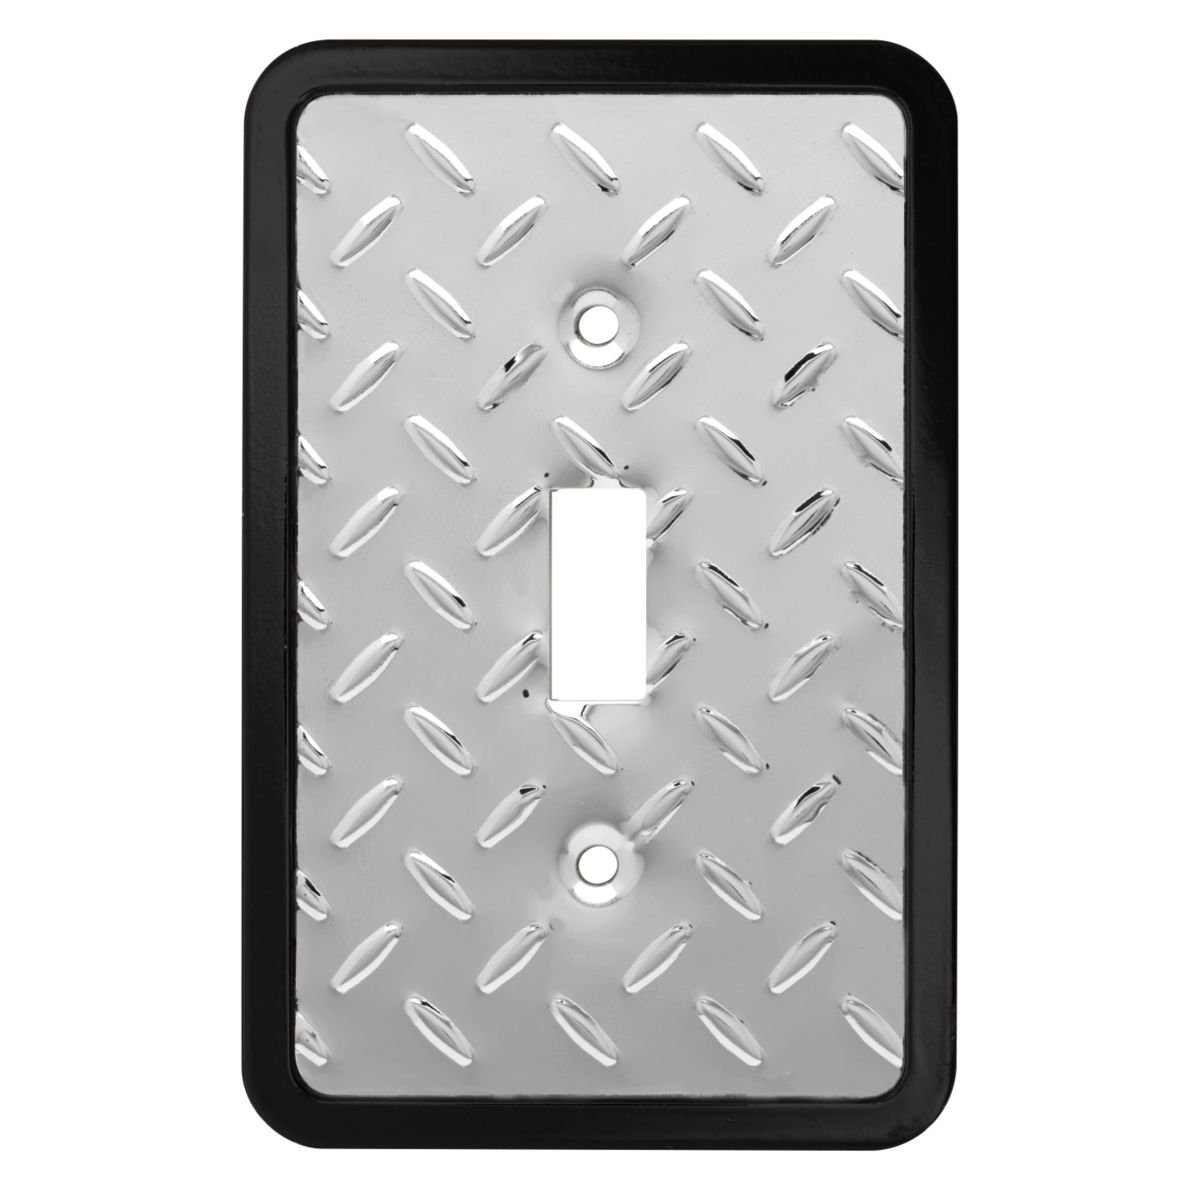 Franklin Brass 135858 Diamond Plate Single Toggle Switch Wall Plate / Switch Plate / Cover